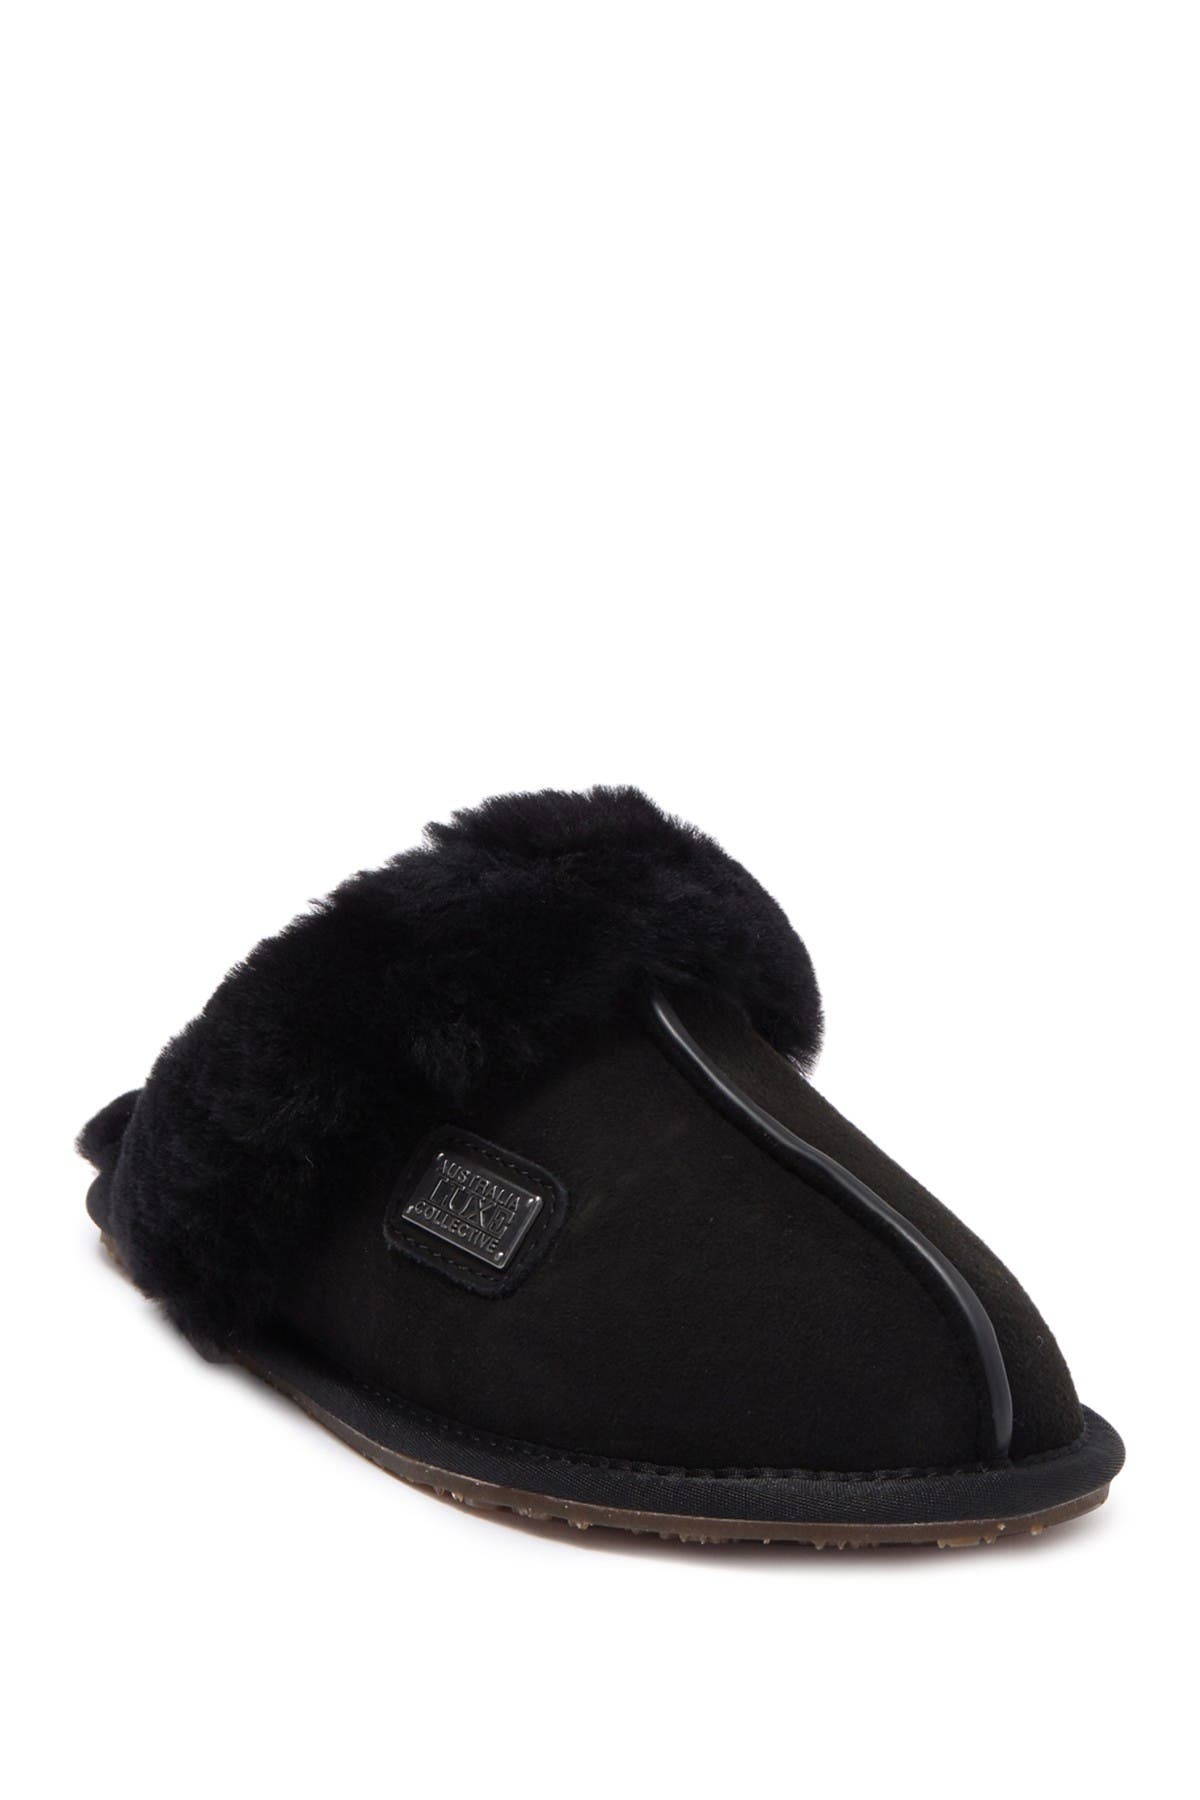 Image of Australia Luxe Collective Genuine Shearling Mule Slipper